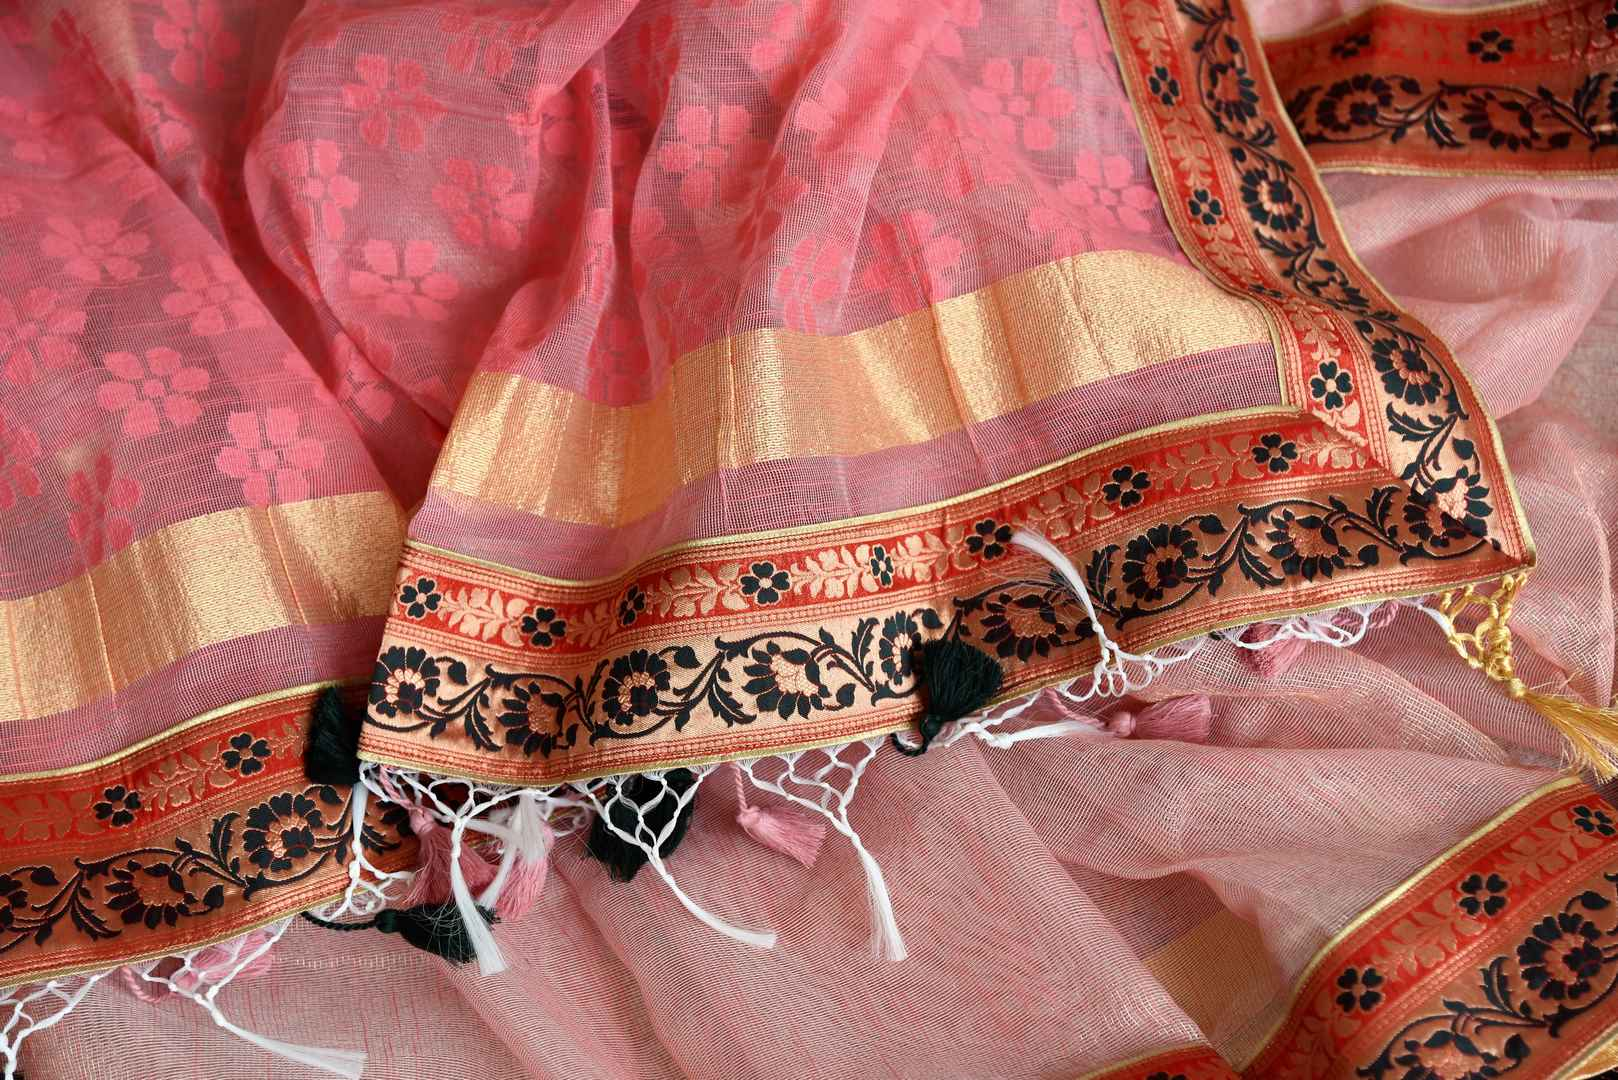 Shop pink jute sari online in USA with Banarasi border. Elevate your traditional style with exquisite Indian designer sarees from Pure Elegance Indian clothing store in USA. Explore a range of stunning silk sarees, embroidered sarees, wedding sarees especially from India for women in USA.-details